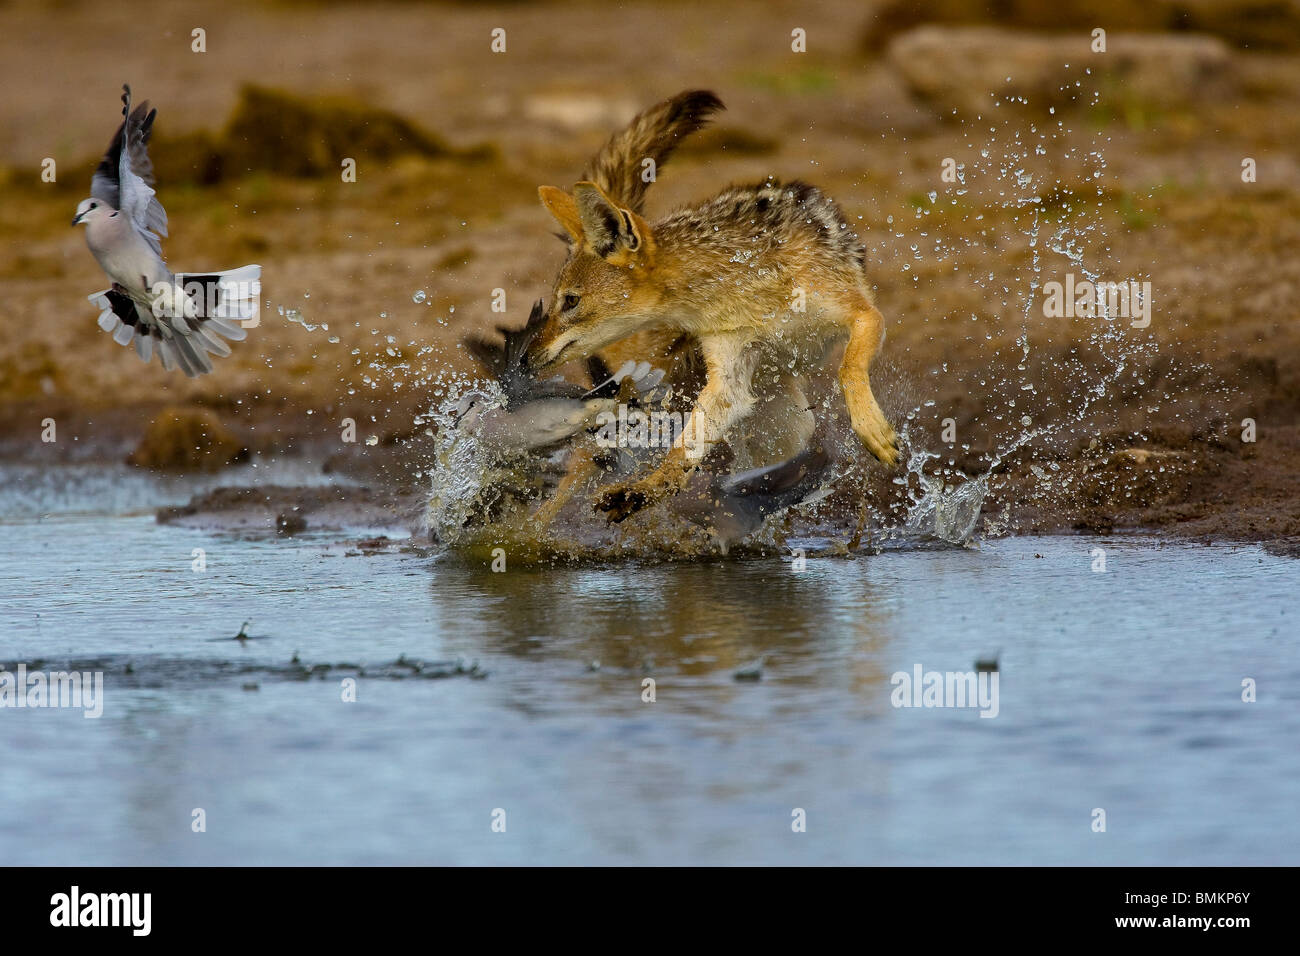 Black backed Jackal chasing Cape Turtle Doves, Etosha, Namibia - Stock Image